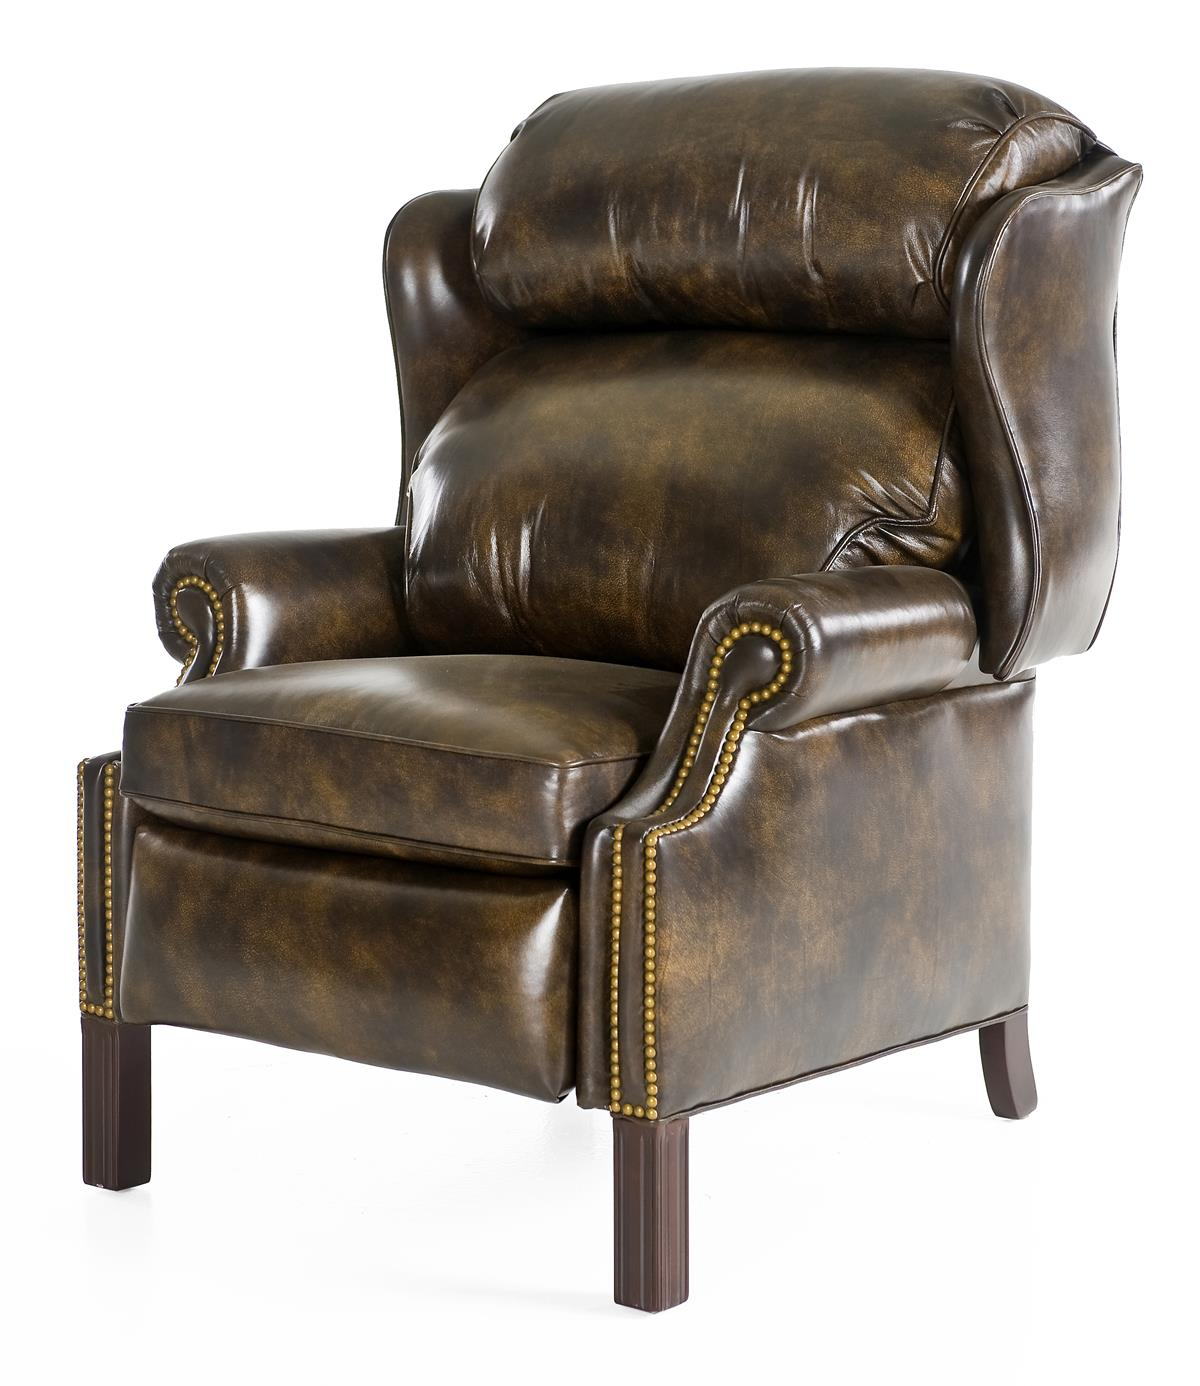 leather getphoto all list mart nebraska recliners furniture